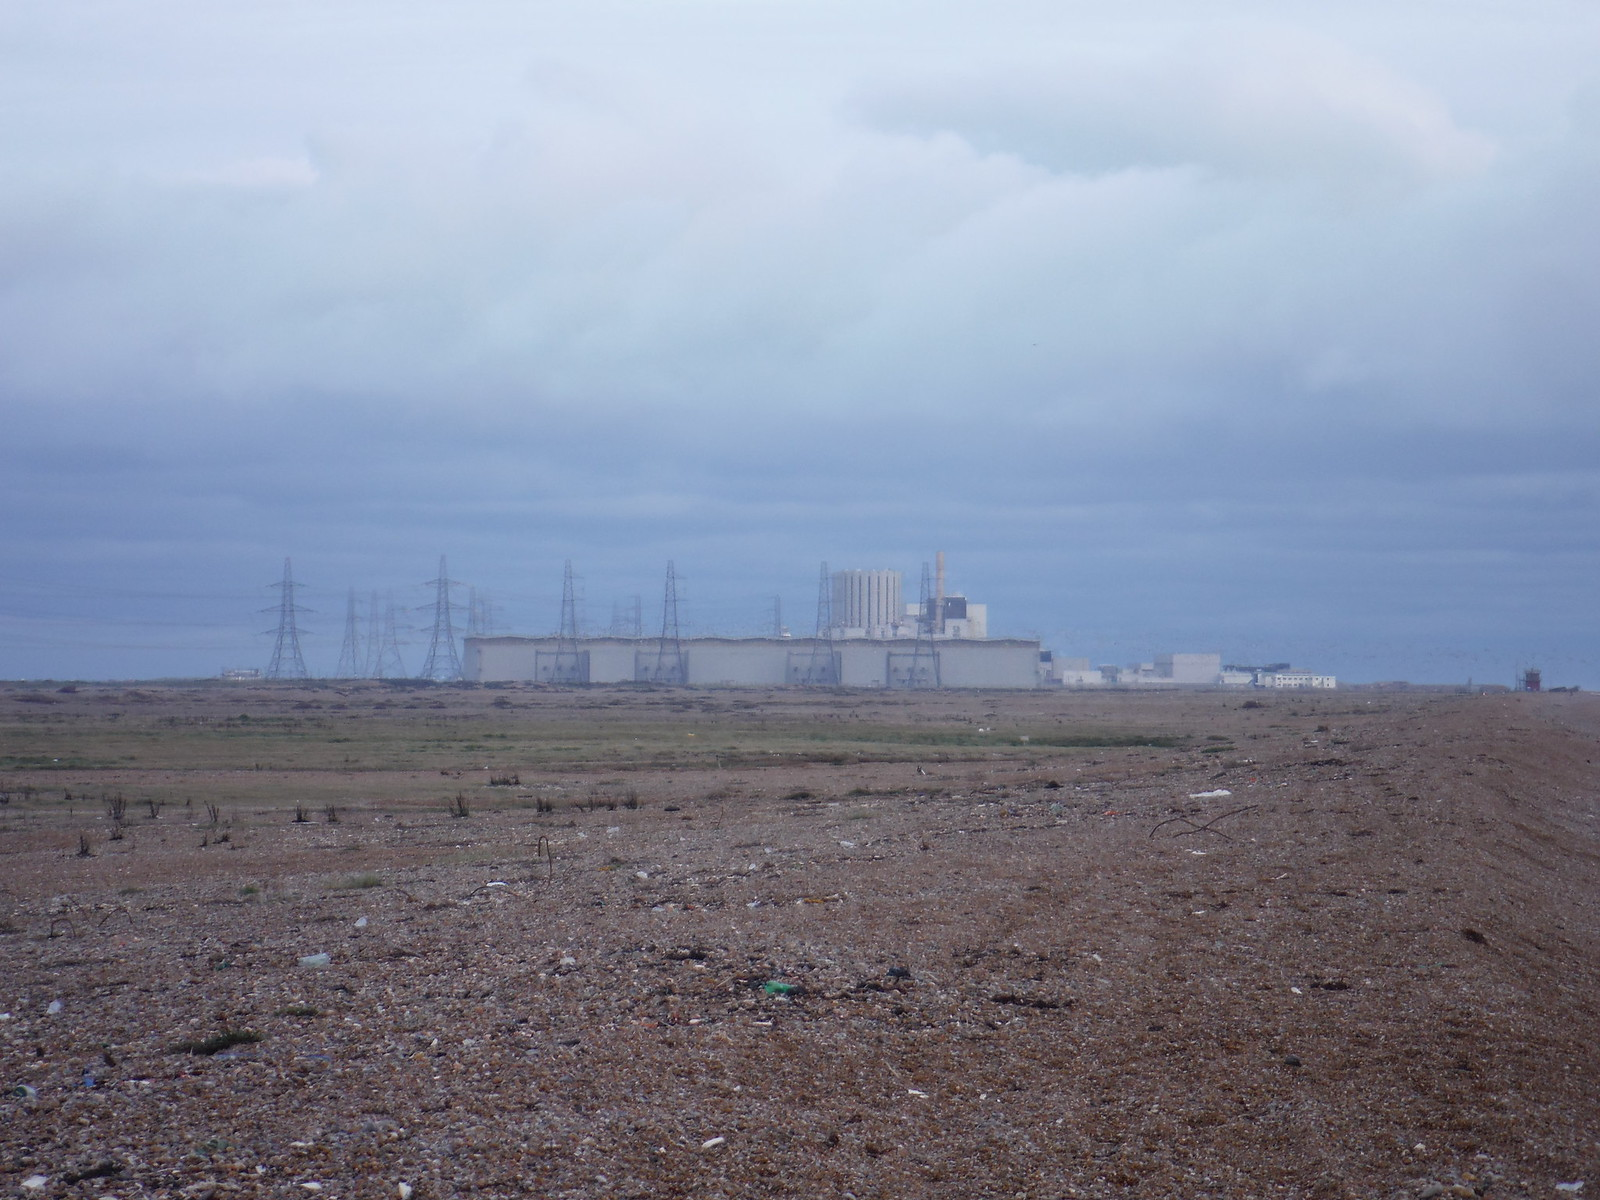 Dungeness Nuke Plant in the Distance SWC 154 - Rye to Dungeness and Lydd-on-Sea or Lydd or Circular